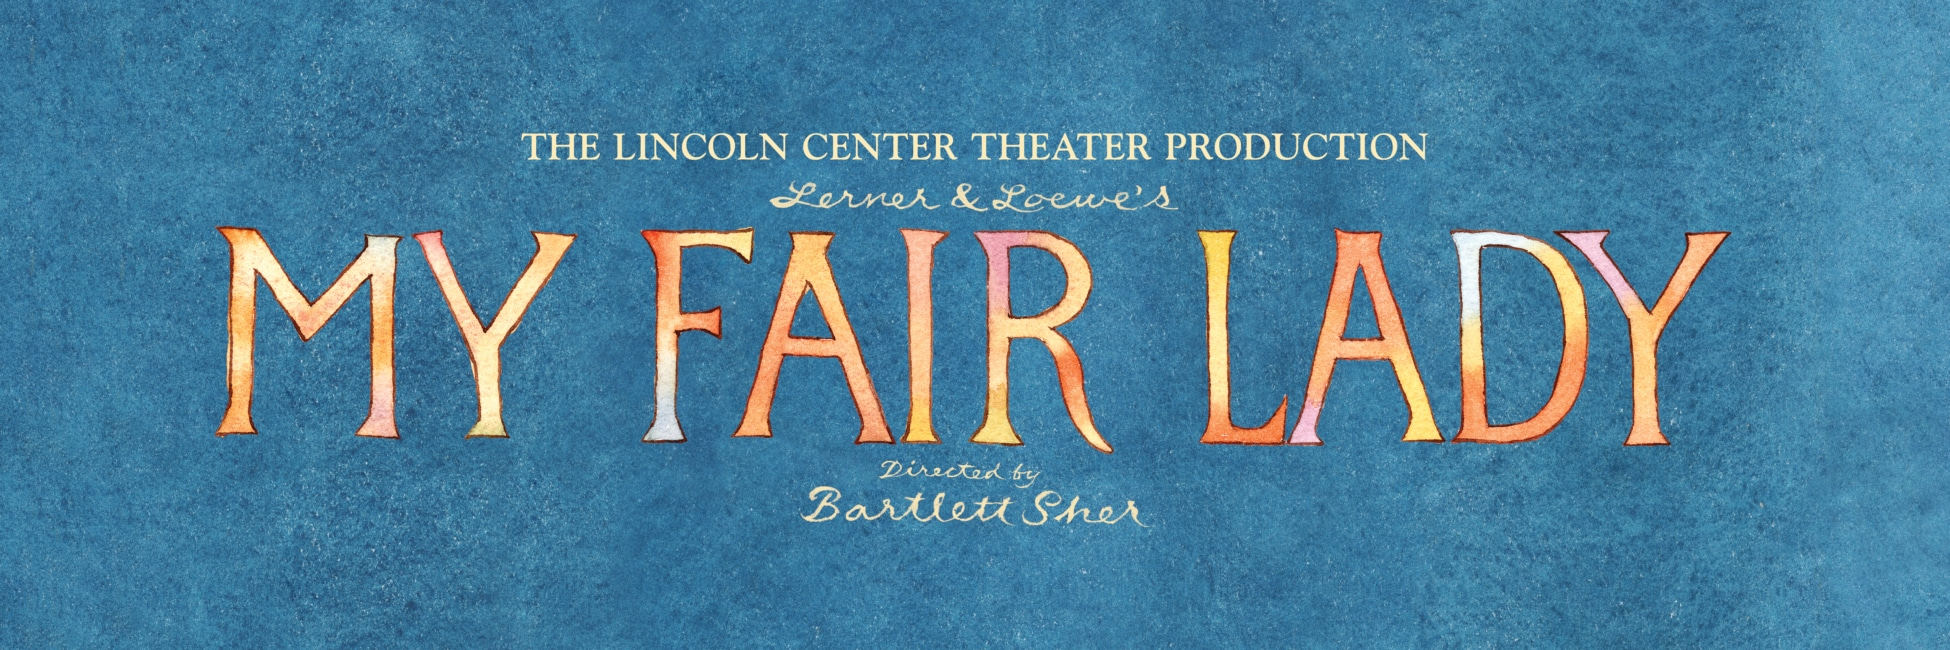 Lincoln Center Theater's MY FAIR LADY.